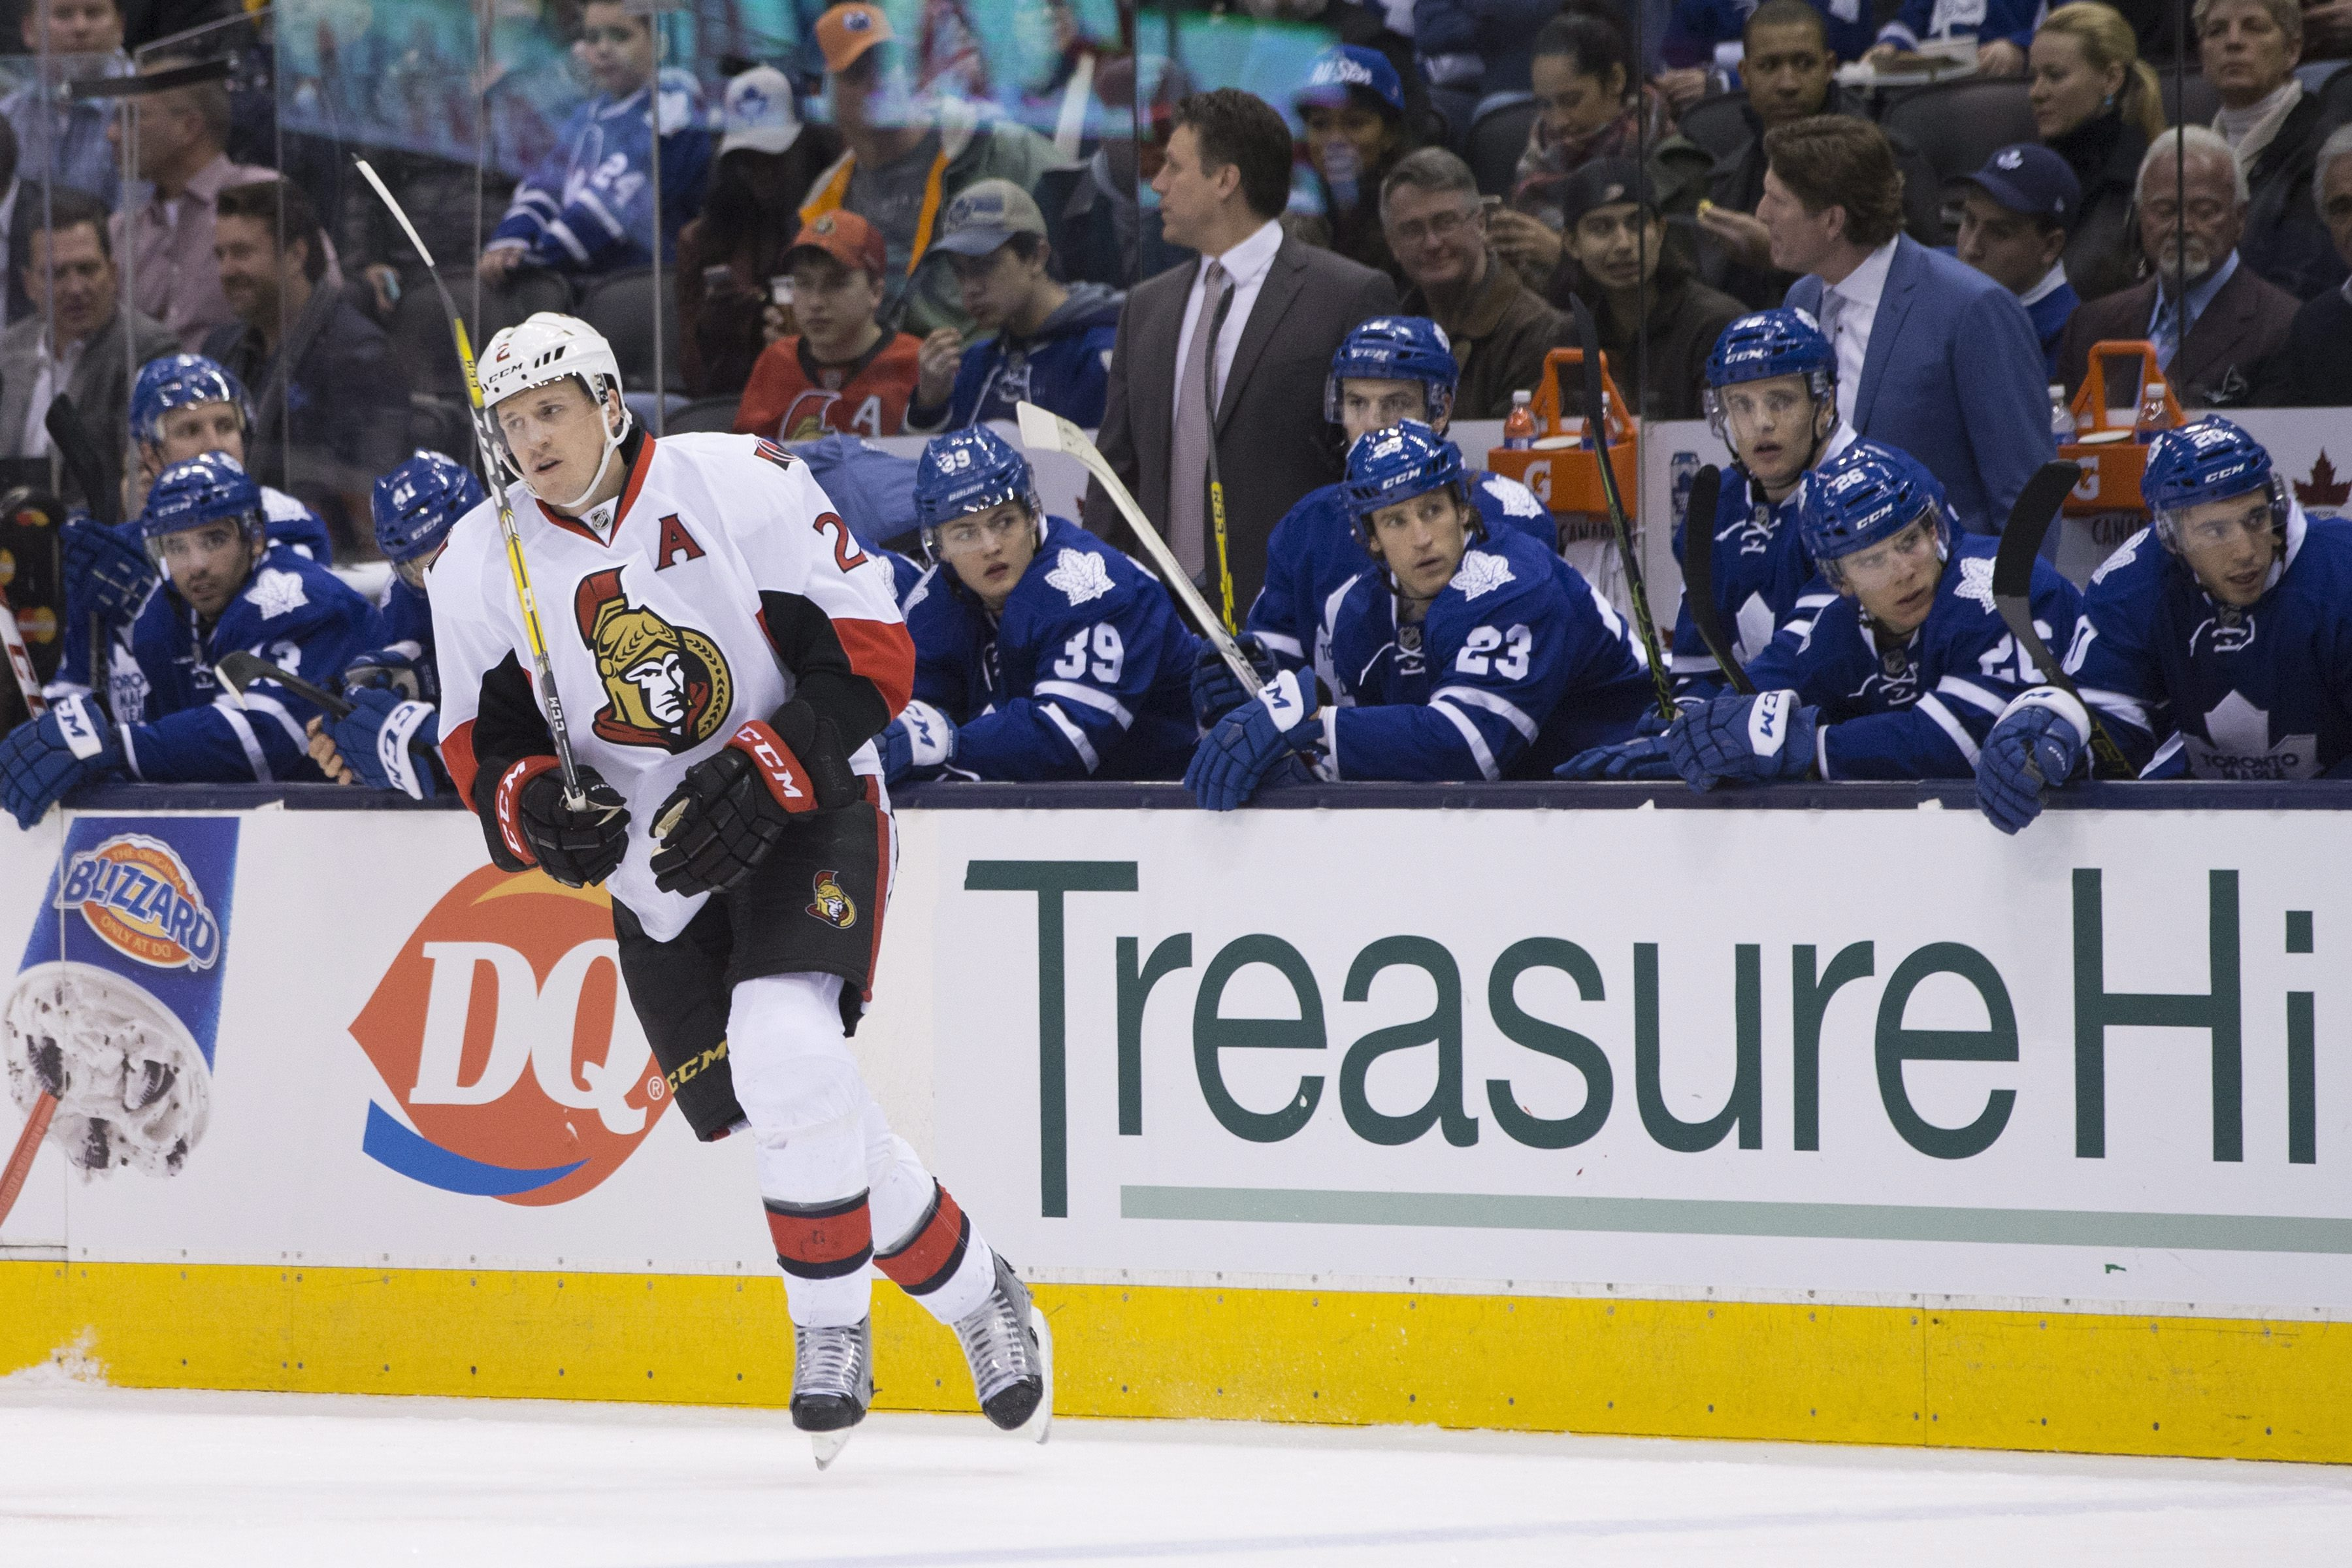 Ottawa Senators' Dion Phaneuf skates pass the Toronto Maple Leafs bench during first-period NHL hockey game action in Toronto, Saturday, March 5, 2016. (Chris Young/The Canadian Press via AP) MANDATORY CREDIT